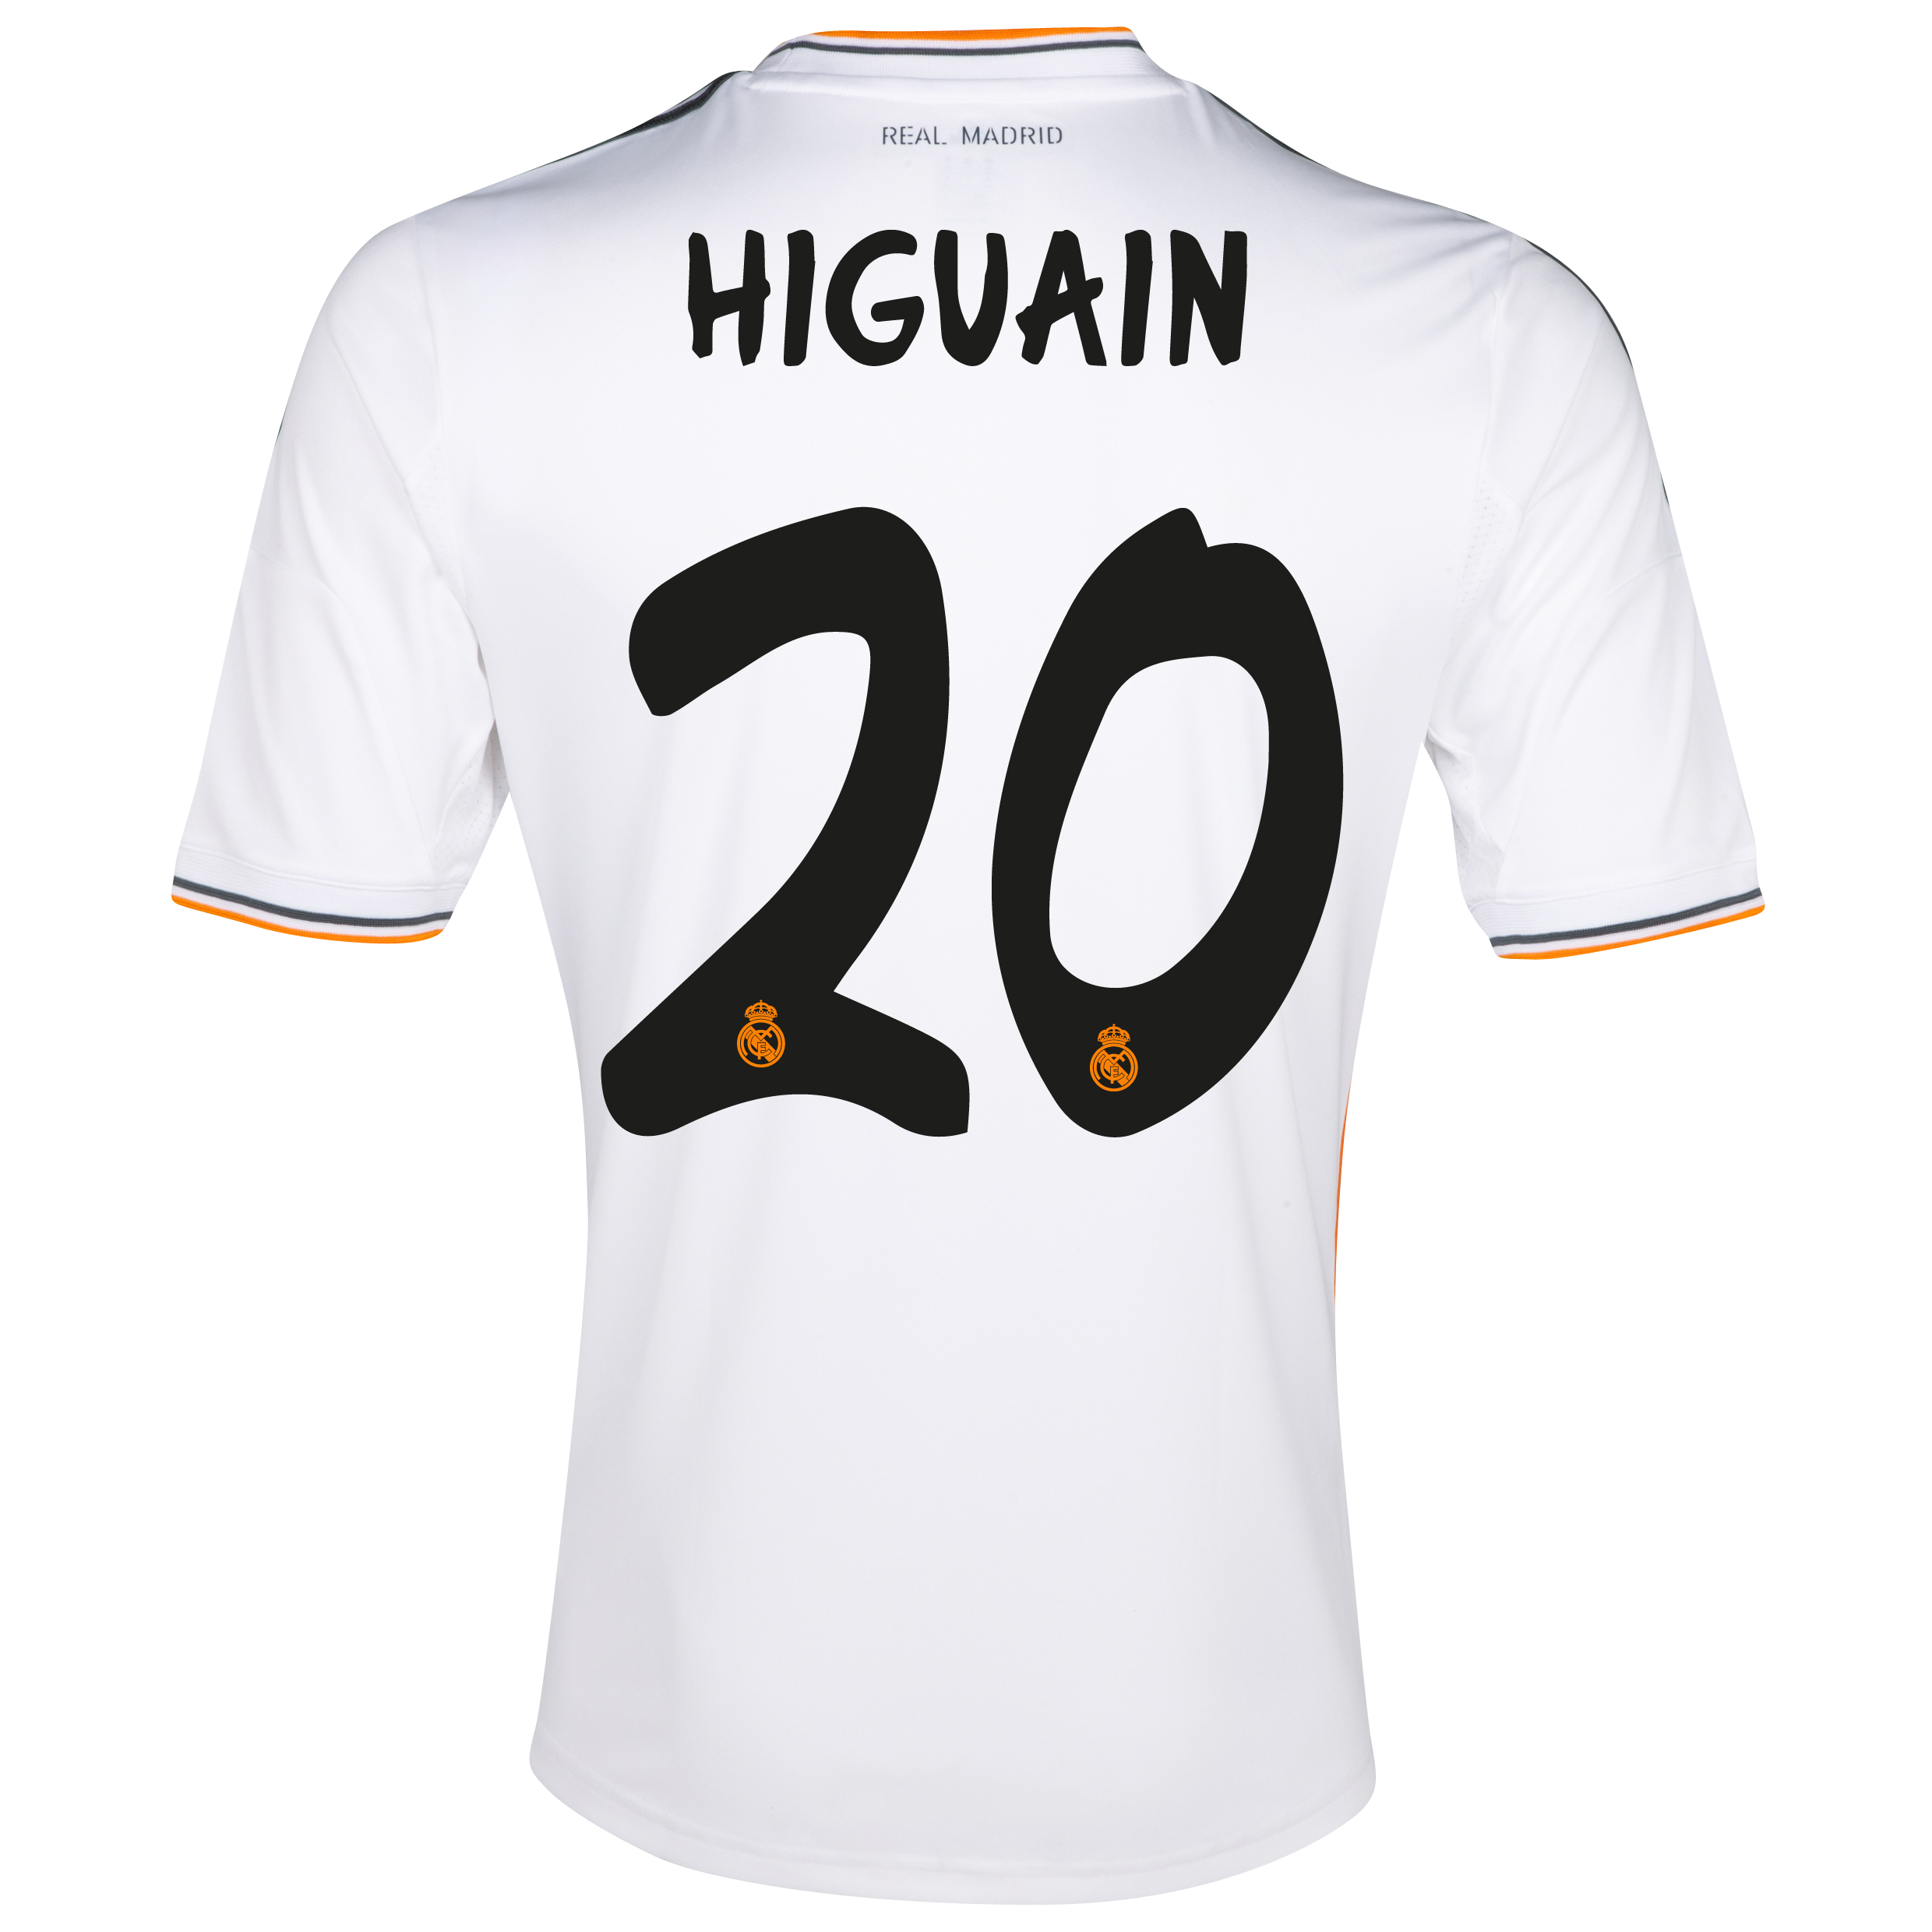 Real Madrid Home Shirt 2013/14 - Kids with Higuaín 20 printing